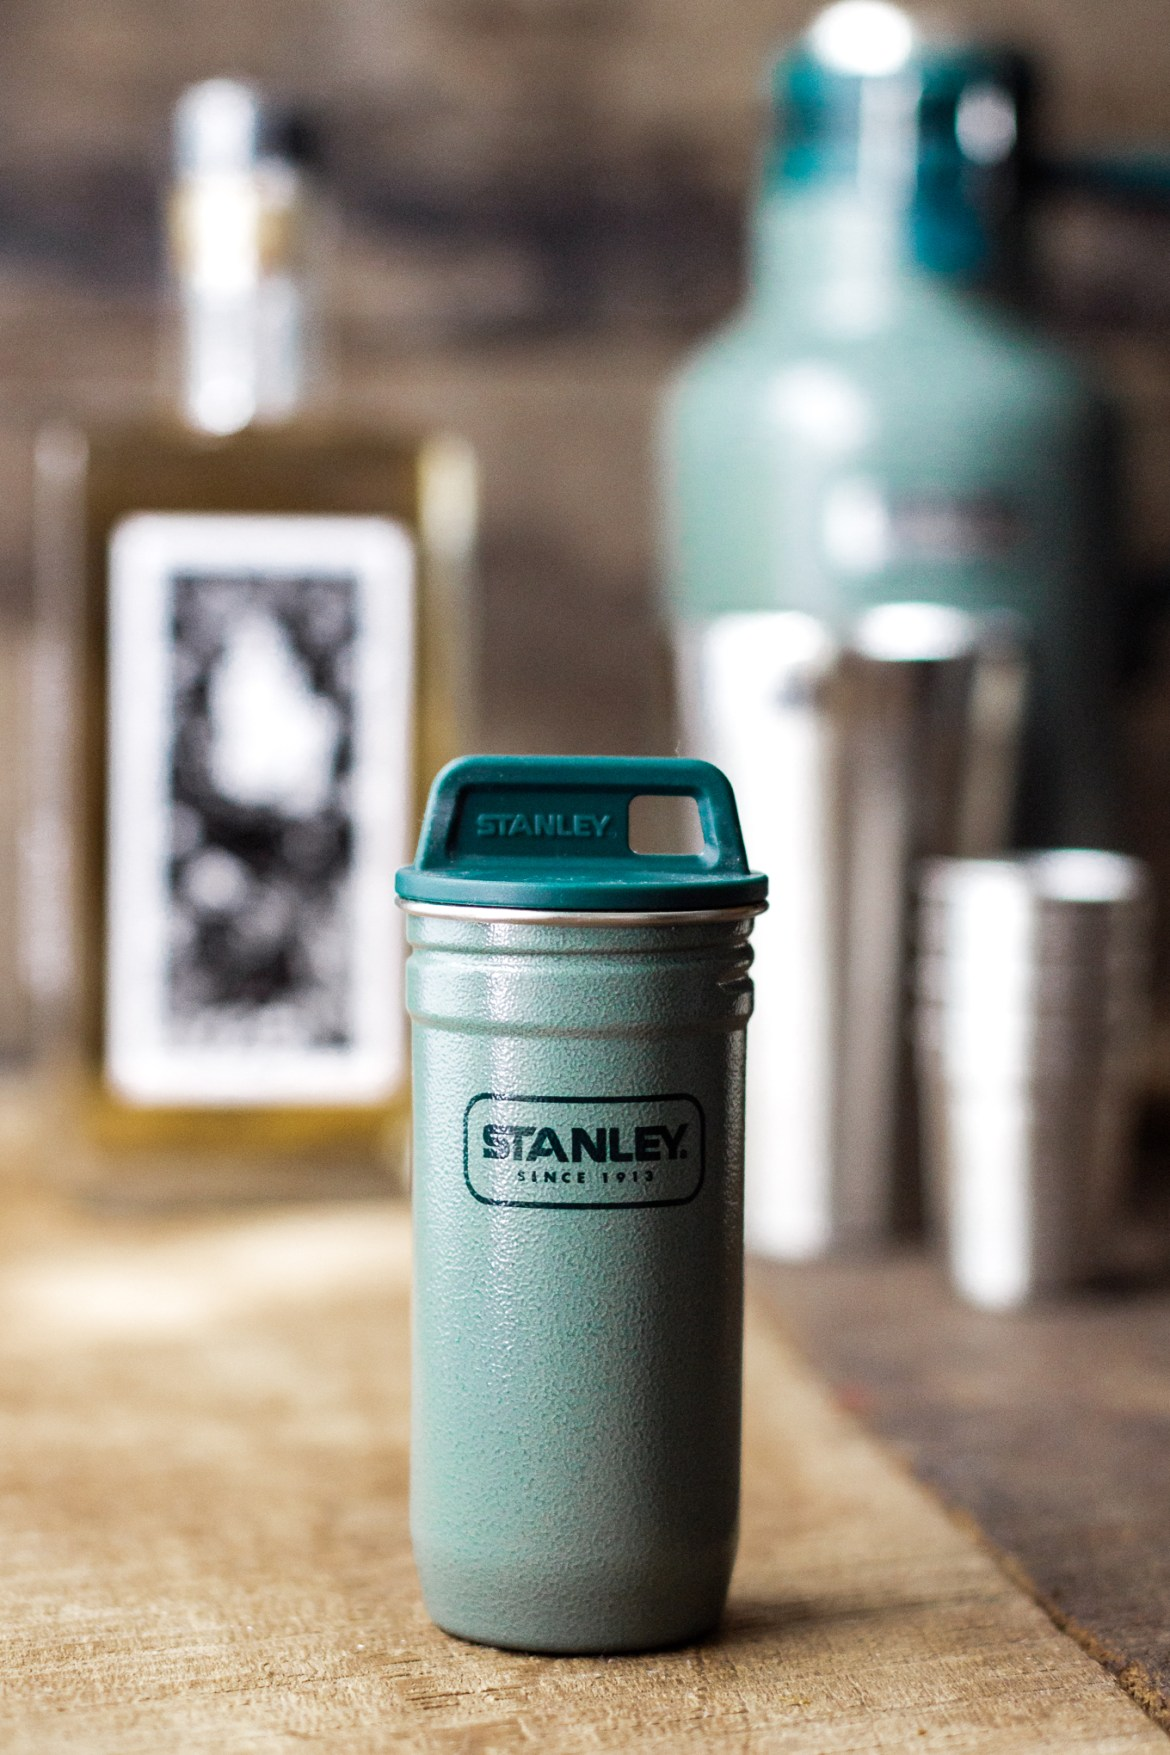 fathers day gift ideas, gift ideas for dad, stanley brand, stanley brand beer growler, beer gifts for dad